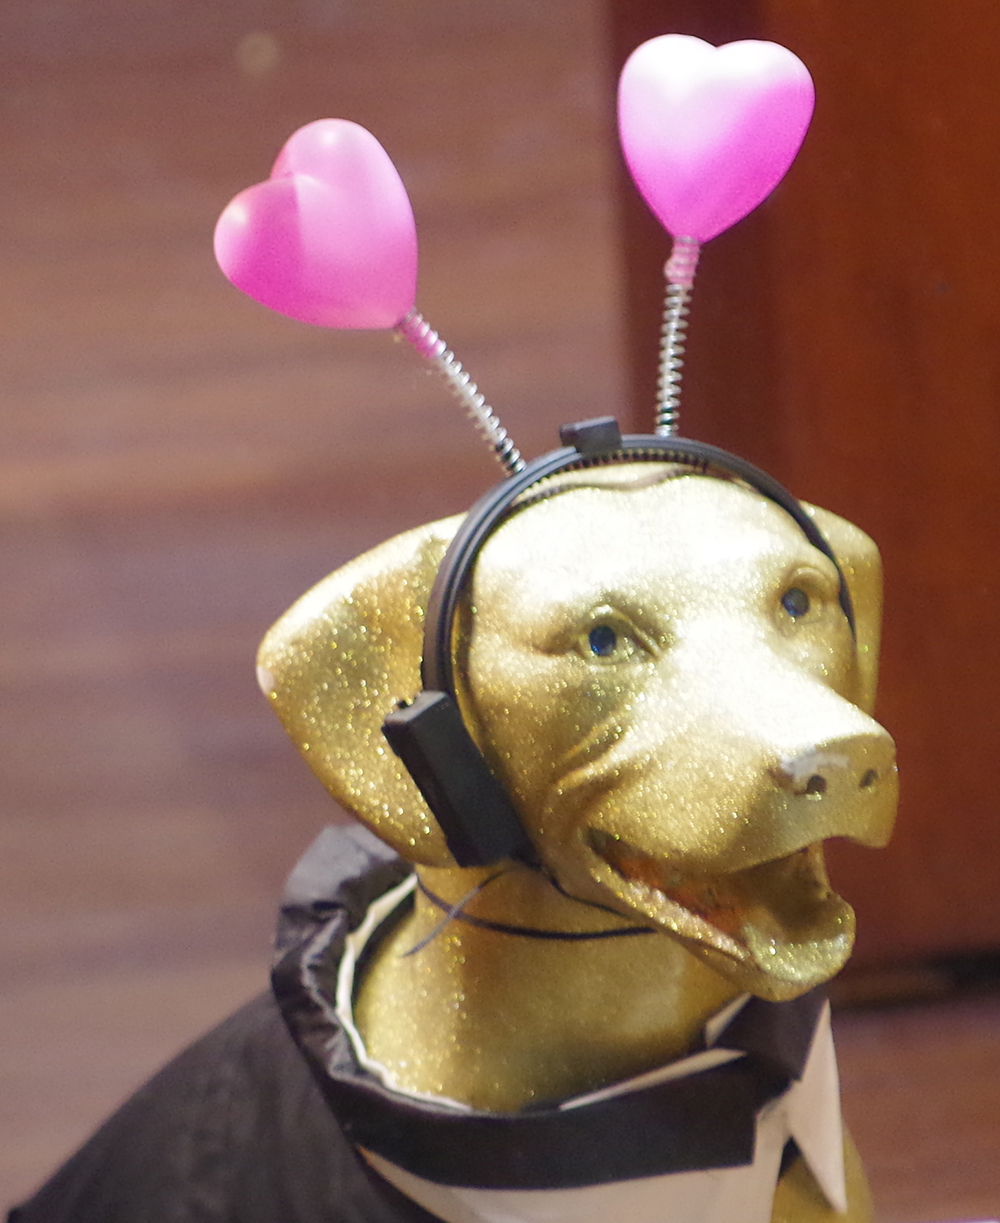 Pike-Chocofest-dog-alien